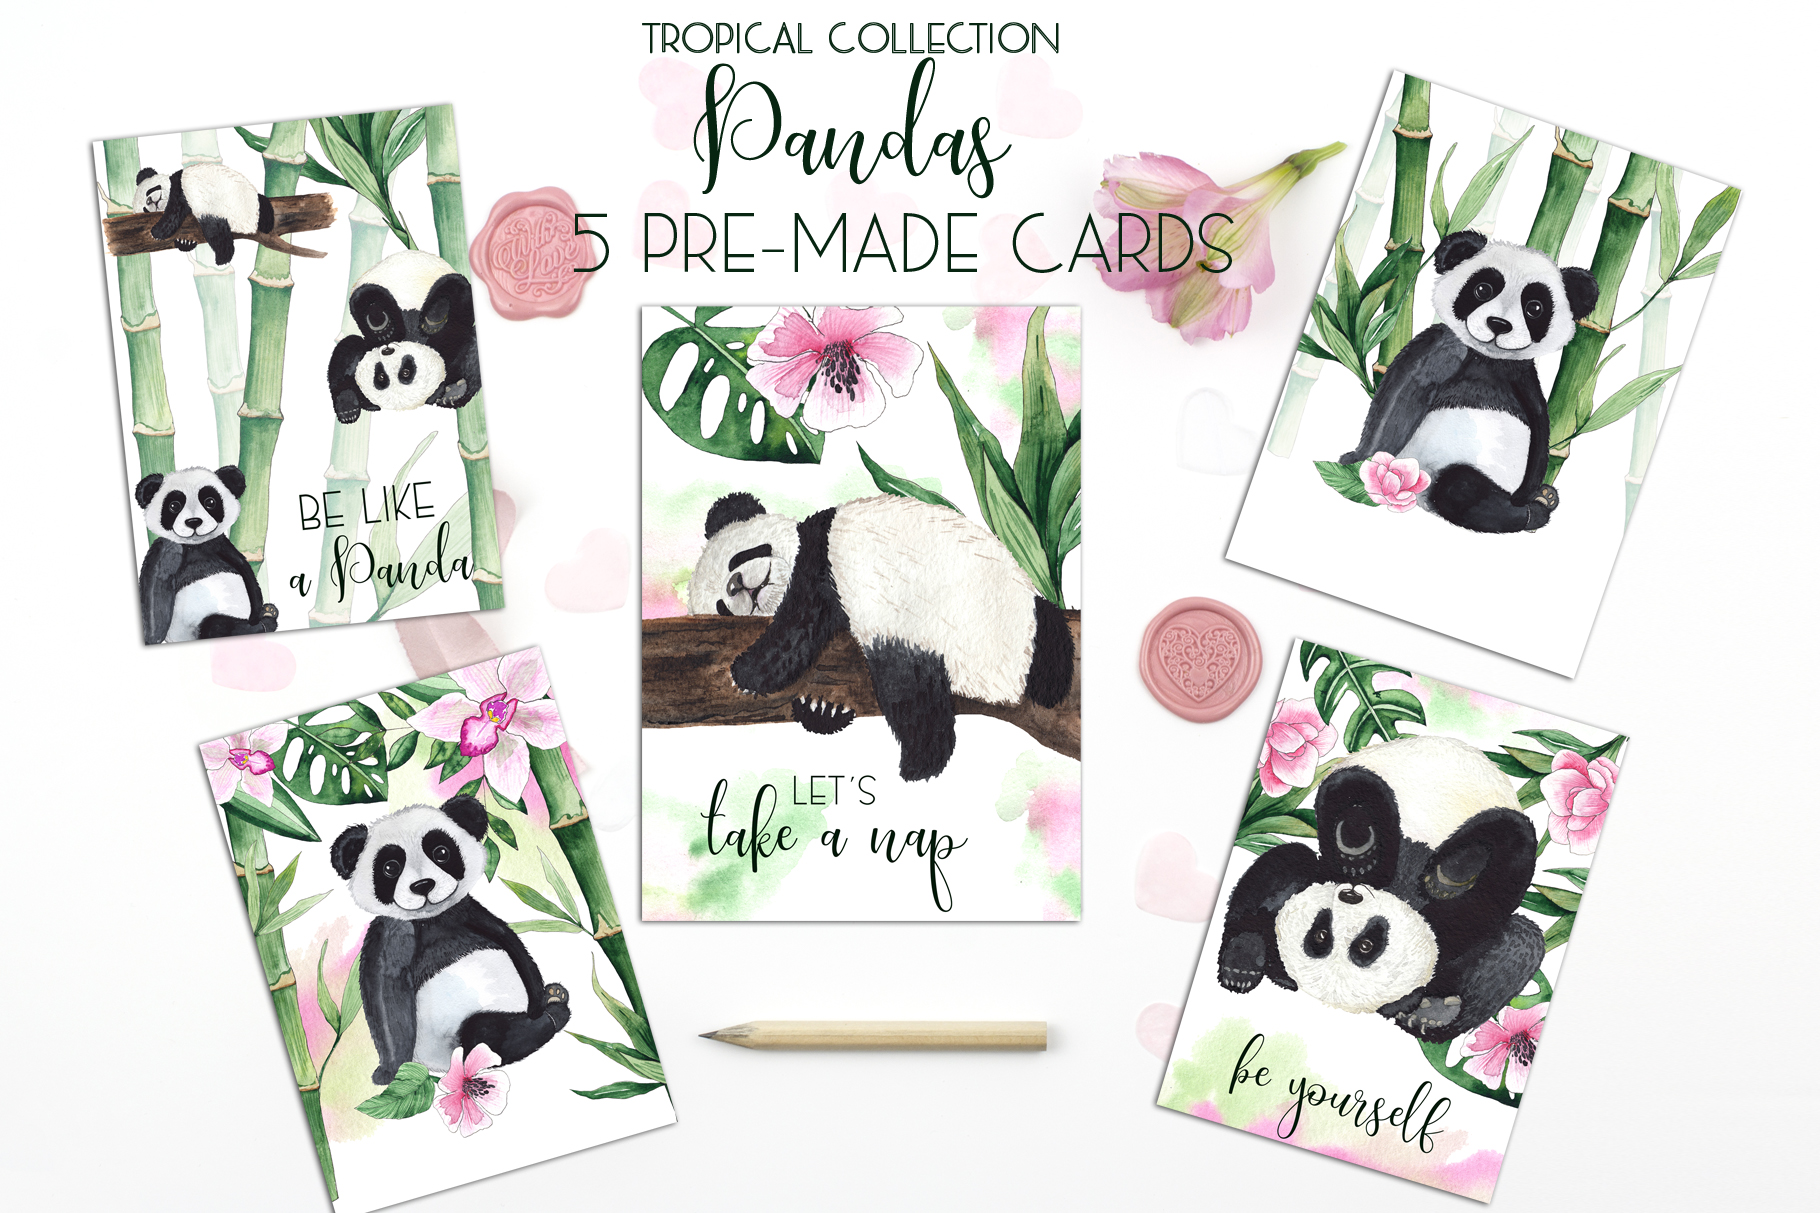 Pandas. Tropical collection example image 2